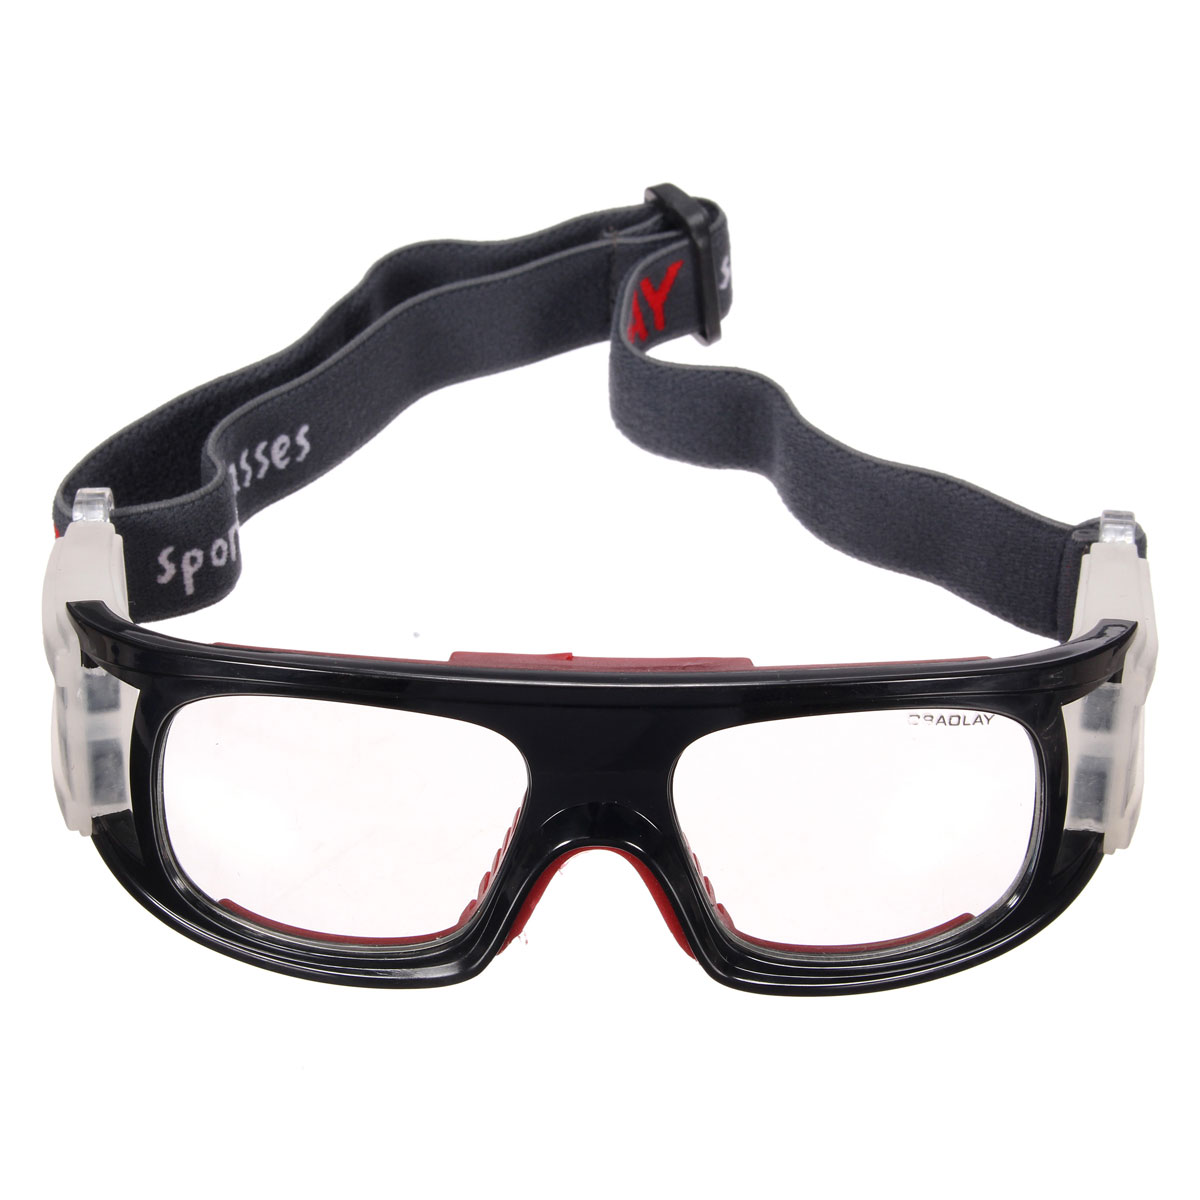 7aaf4aa36595 Product details of Autoleader Basketball Soccer Football Sports Protective  Eyewear Goggles UV Eye Glasses Gift (Red Black)